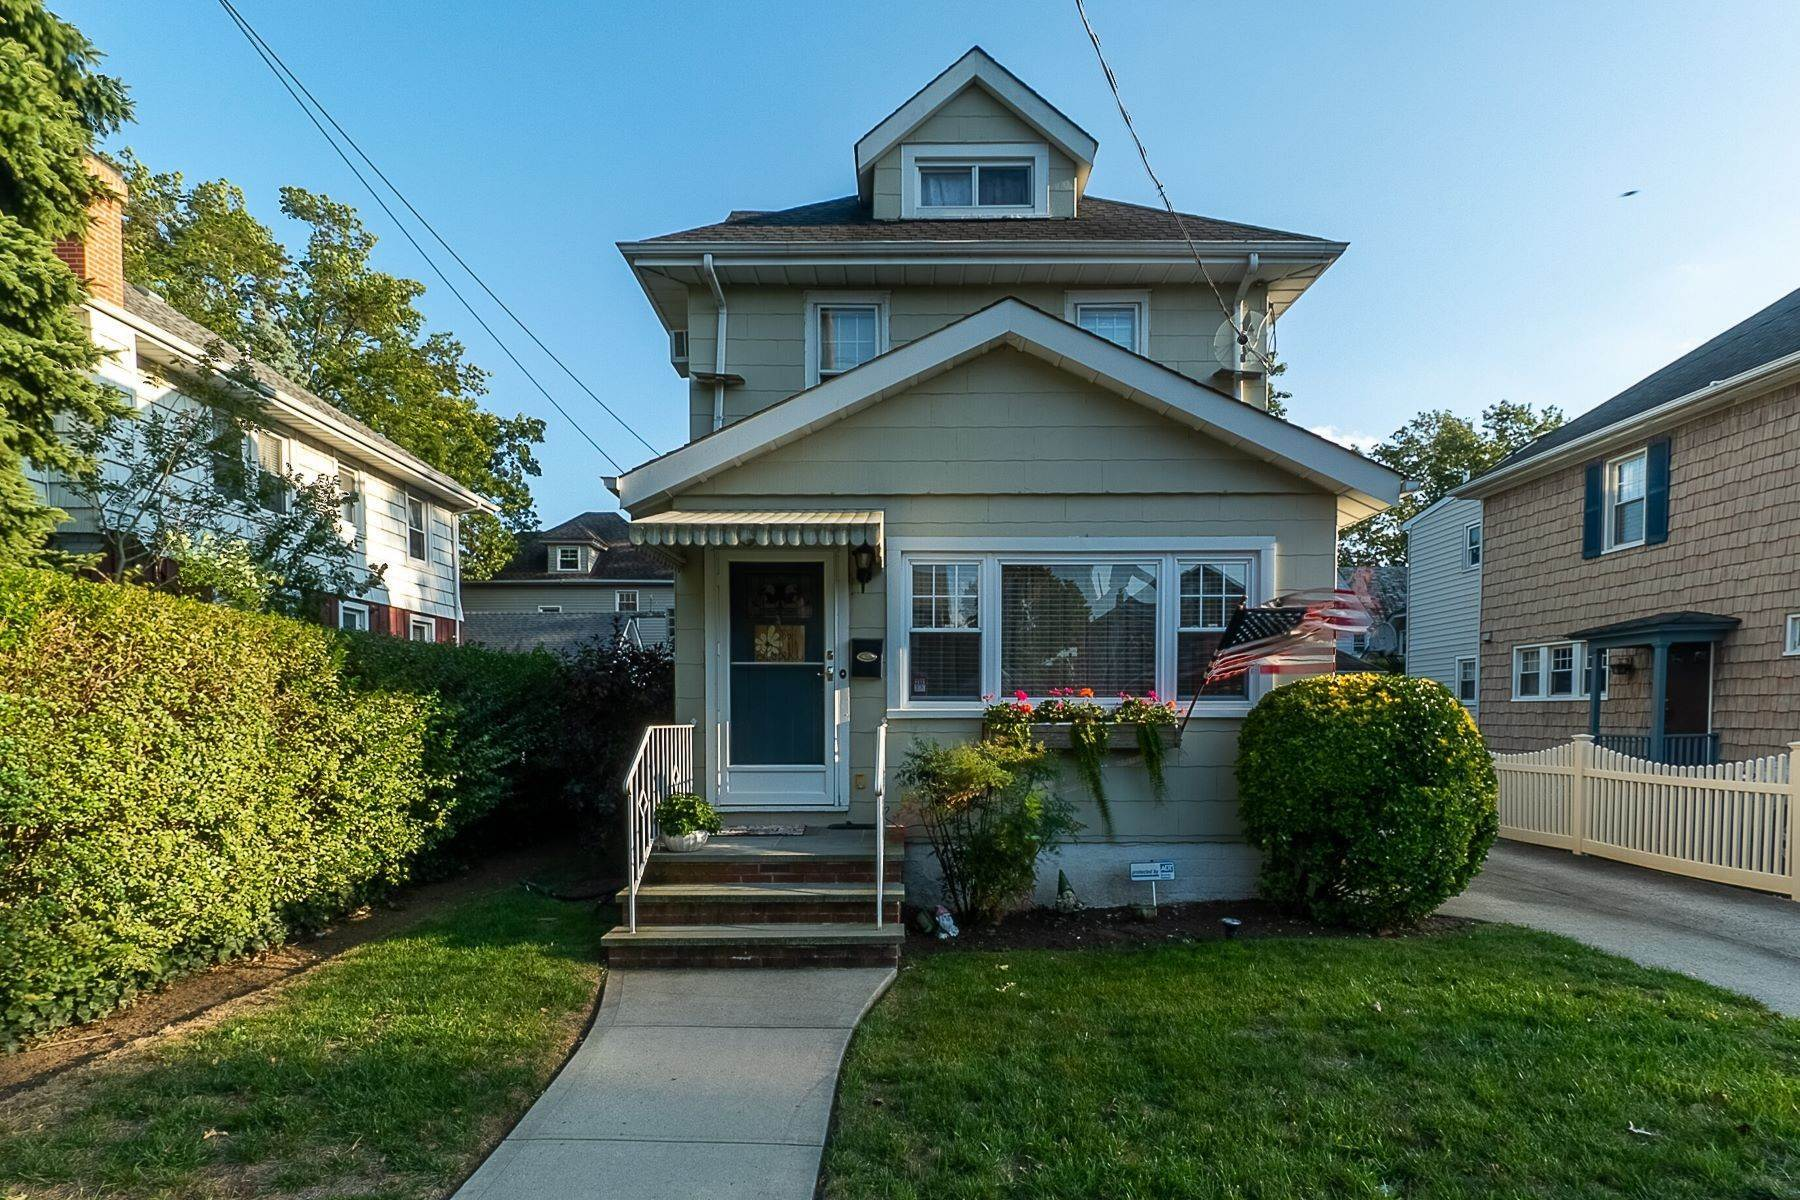 Single Family Homes for Sale at 196 Lowell Avenue, Floral Park, Ny, 11001 196 Lowell Avenue Floral Park, New York 11001 United States